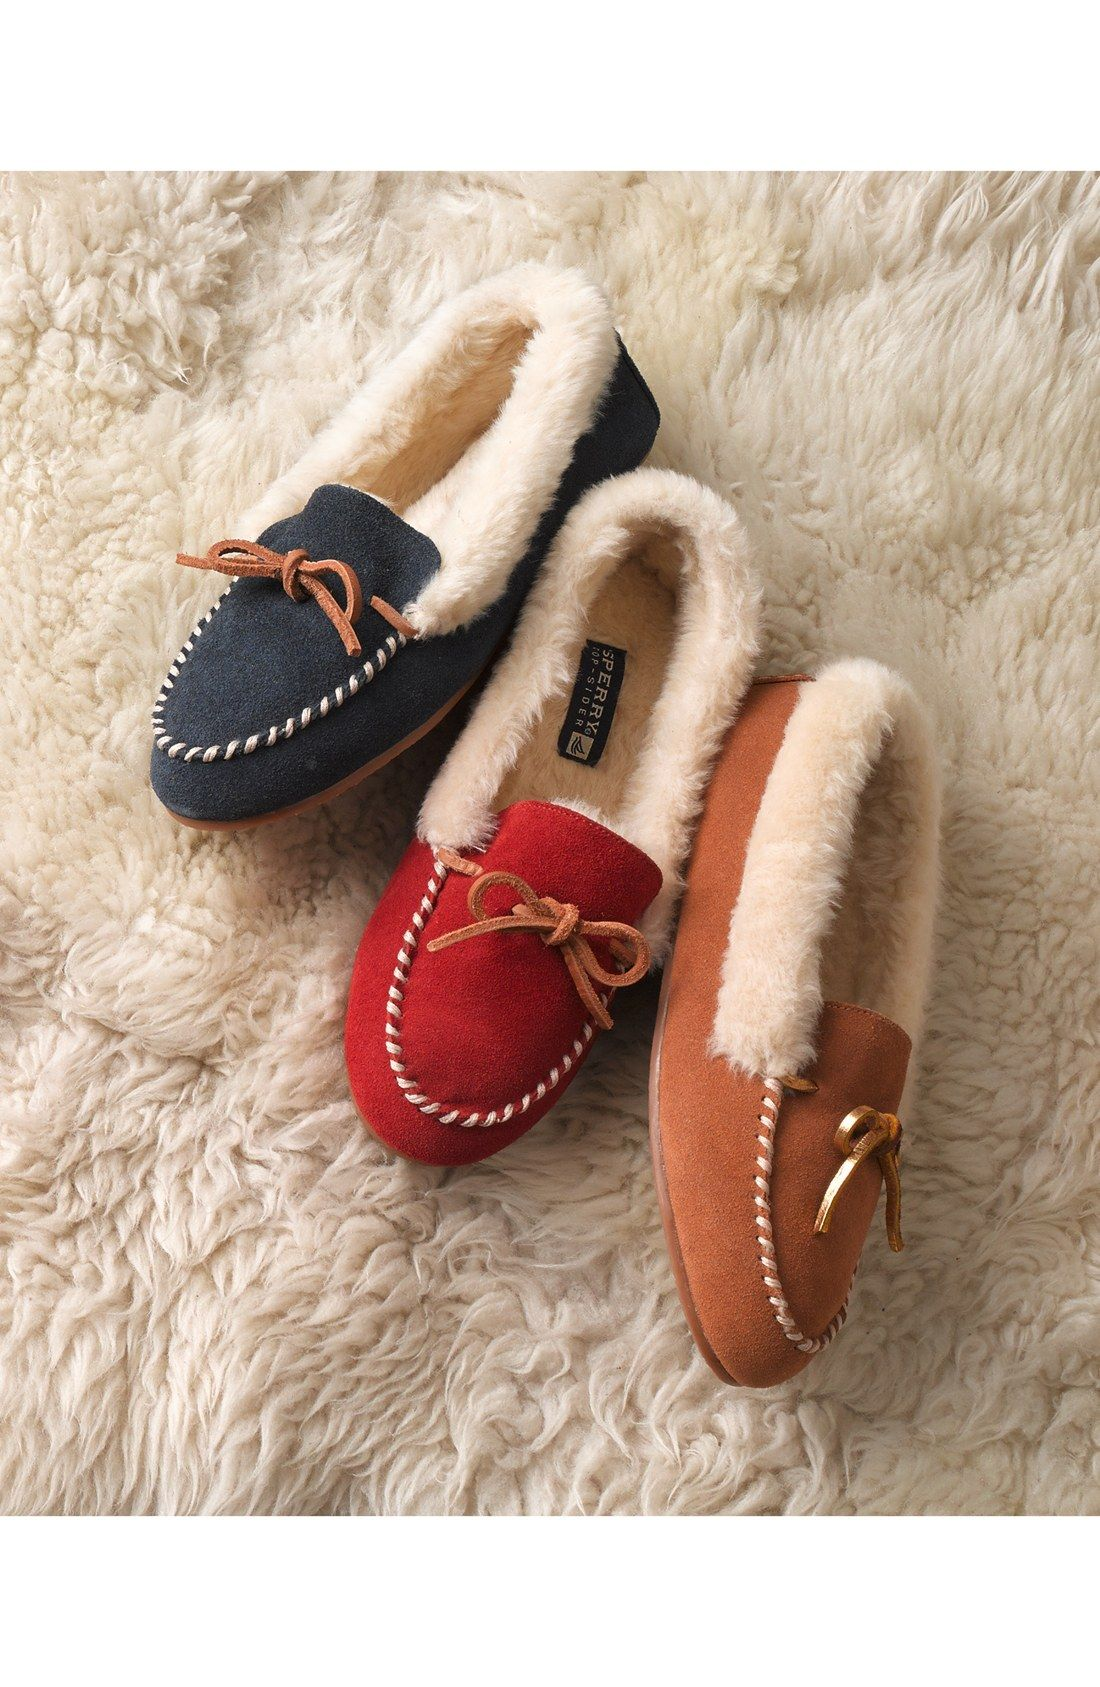 cd596be99 The coziest of slippers in the warmest of colors. | Fall Fashion ...